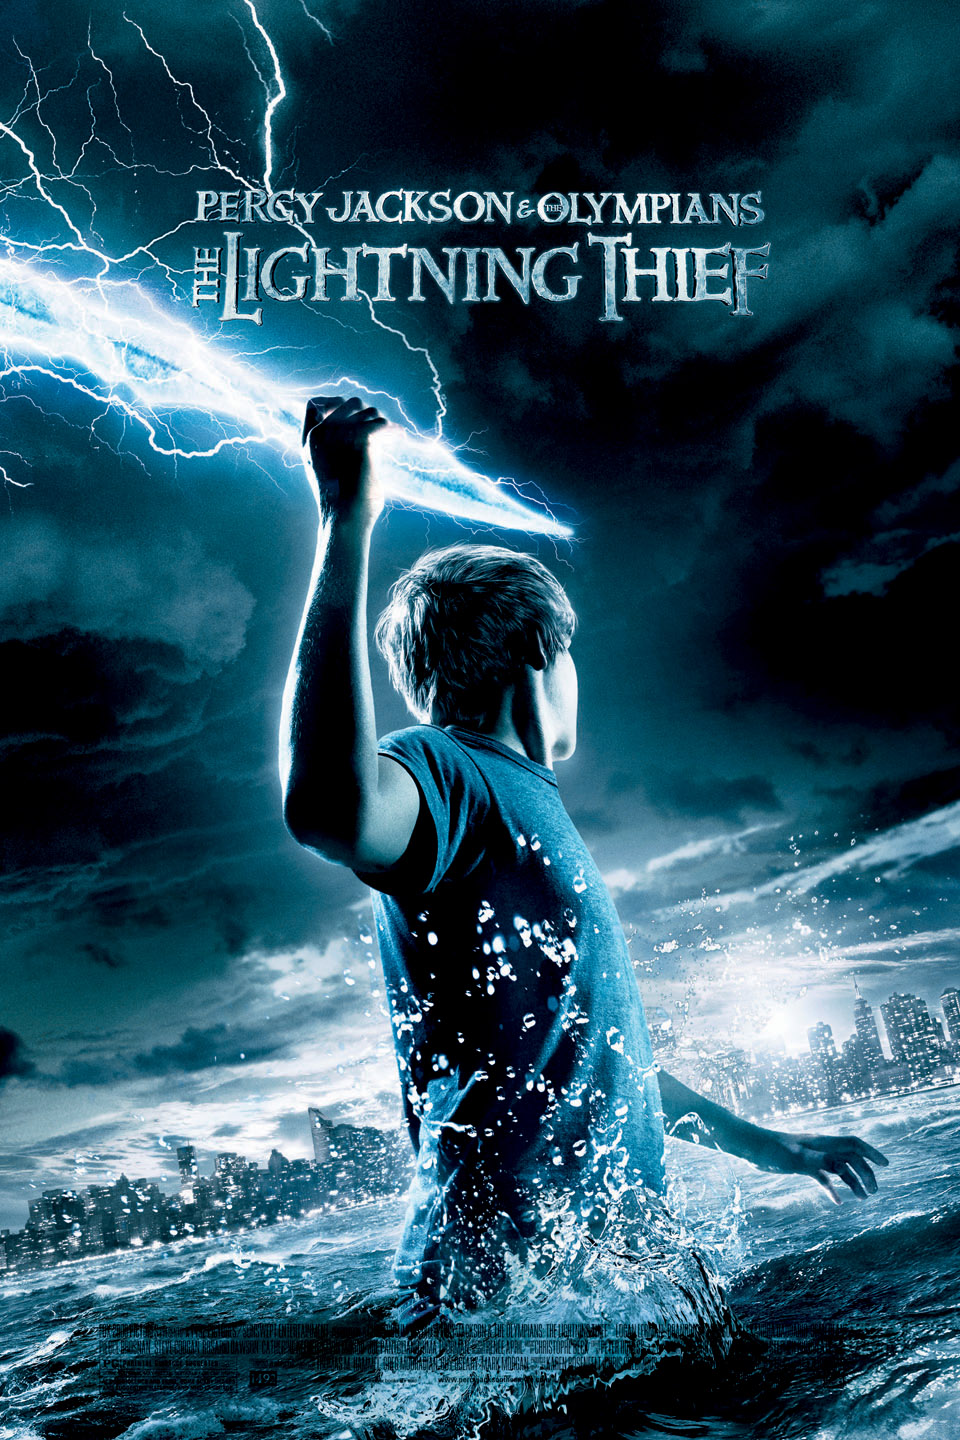 Percy Jackson & the Olympians: The Lightning Thief-Percy Jackson & the Olympians: The Lightning Thief